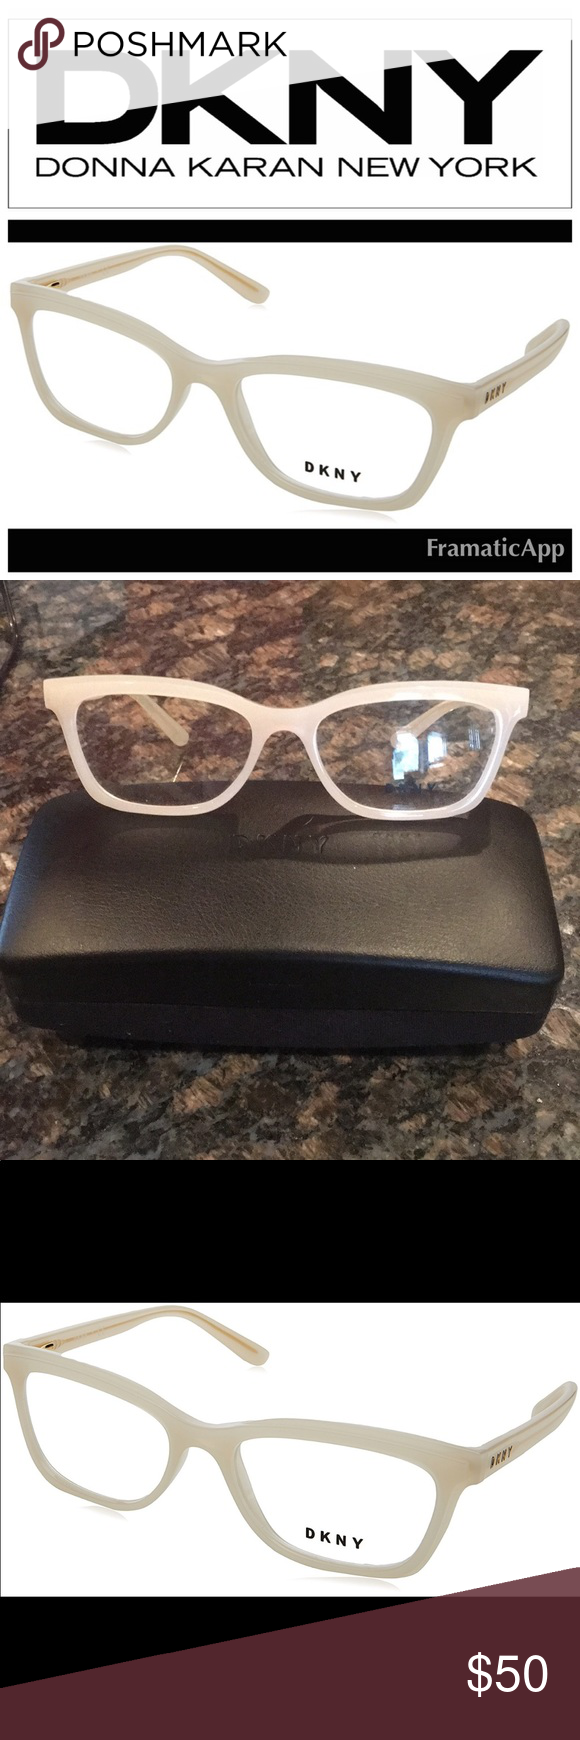 c1813f6d6829 DKNY Glasses Glasses are BRAND NEW! Lenses are CLEAR! I bought these to  turn into sunglasses and they just do nothing for me! Color is a creamy  white gold ...